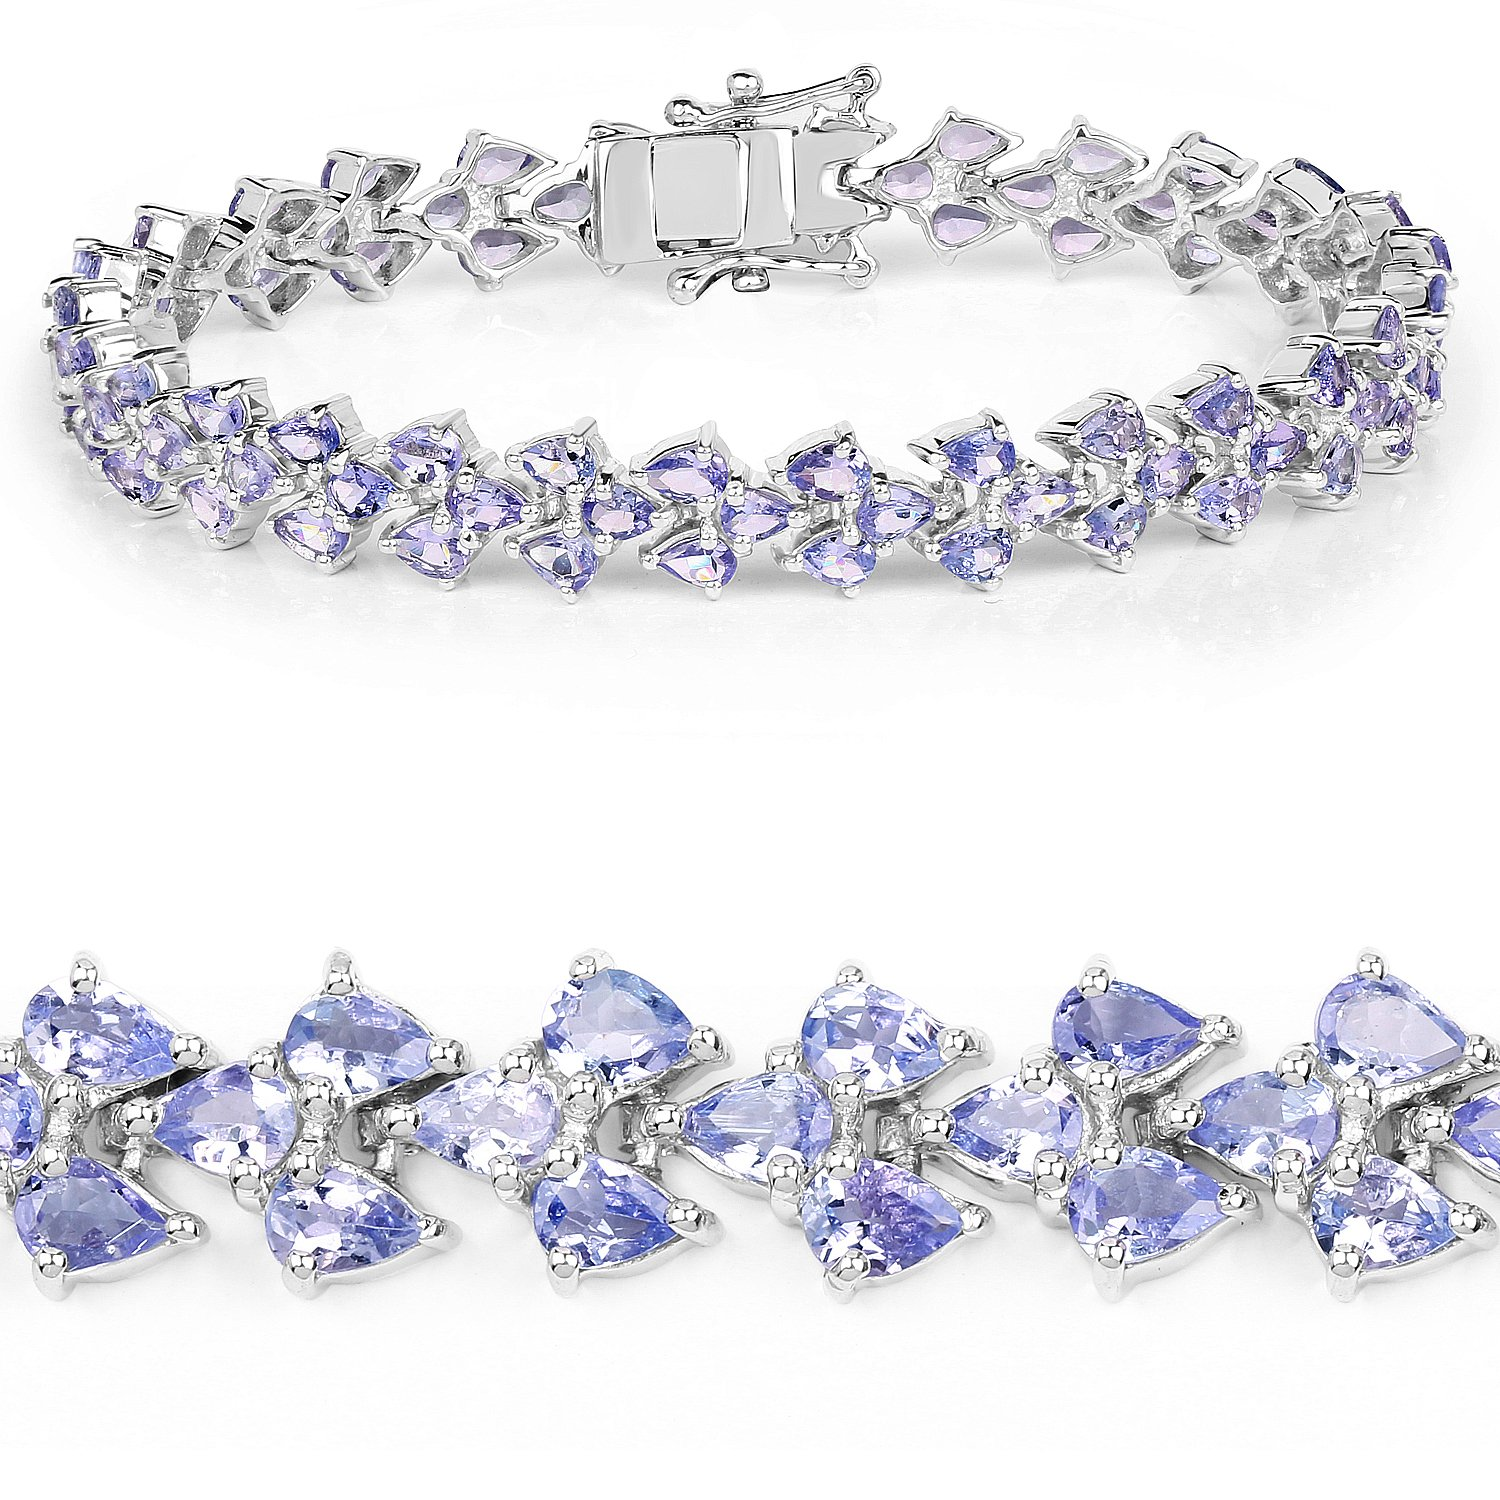 Sterling Silver 925 Bracelet 13.72 ct Tanzanite Pears Gemstone 8.25 inches